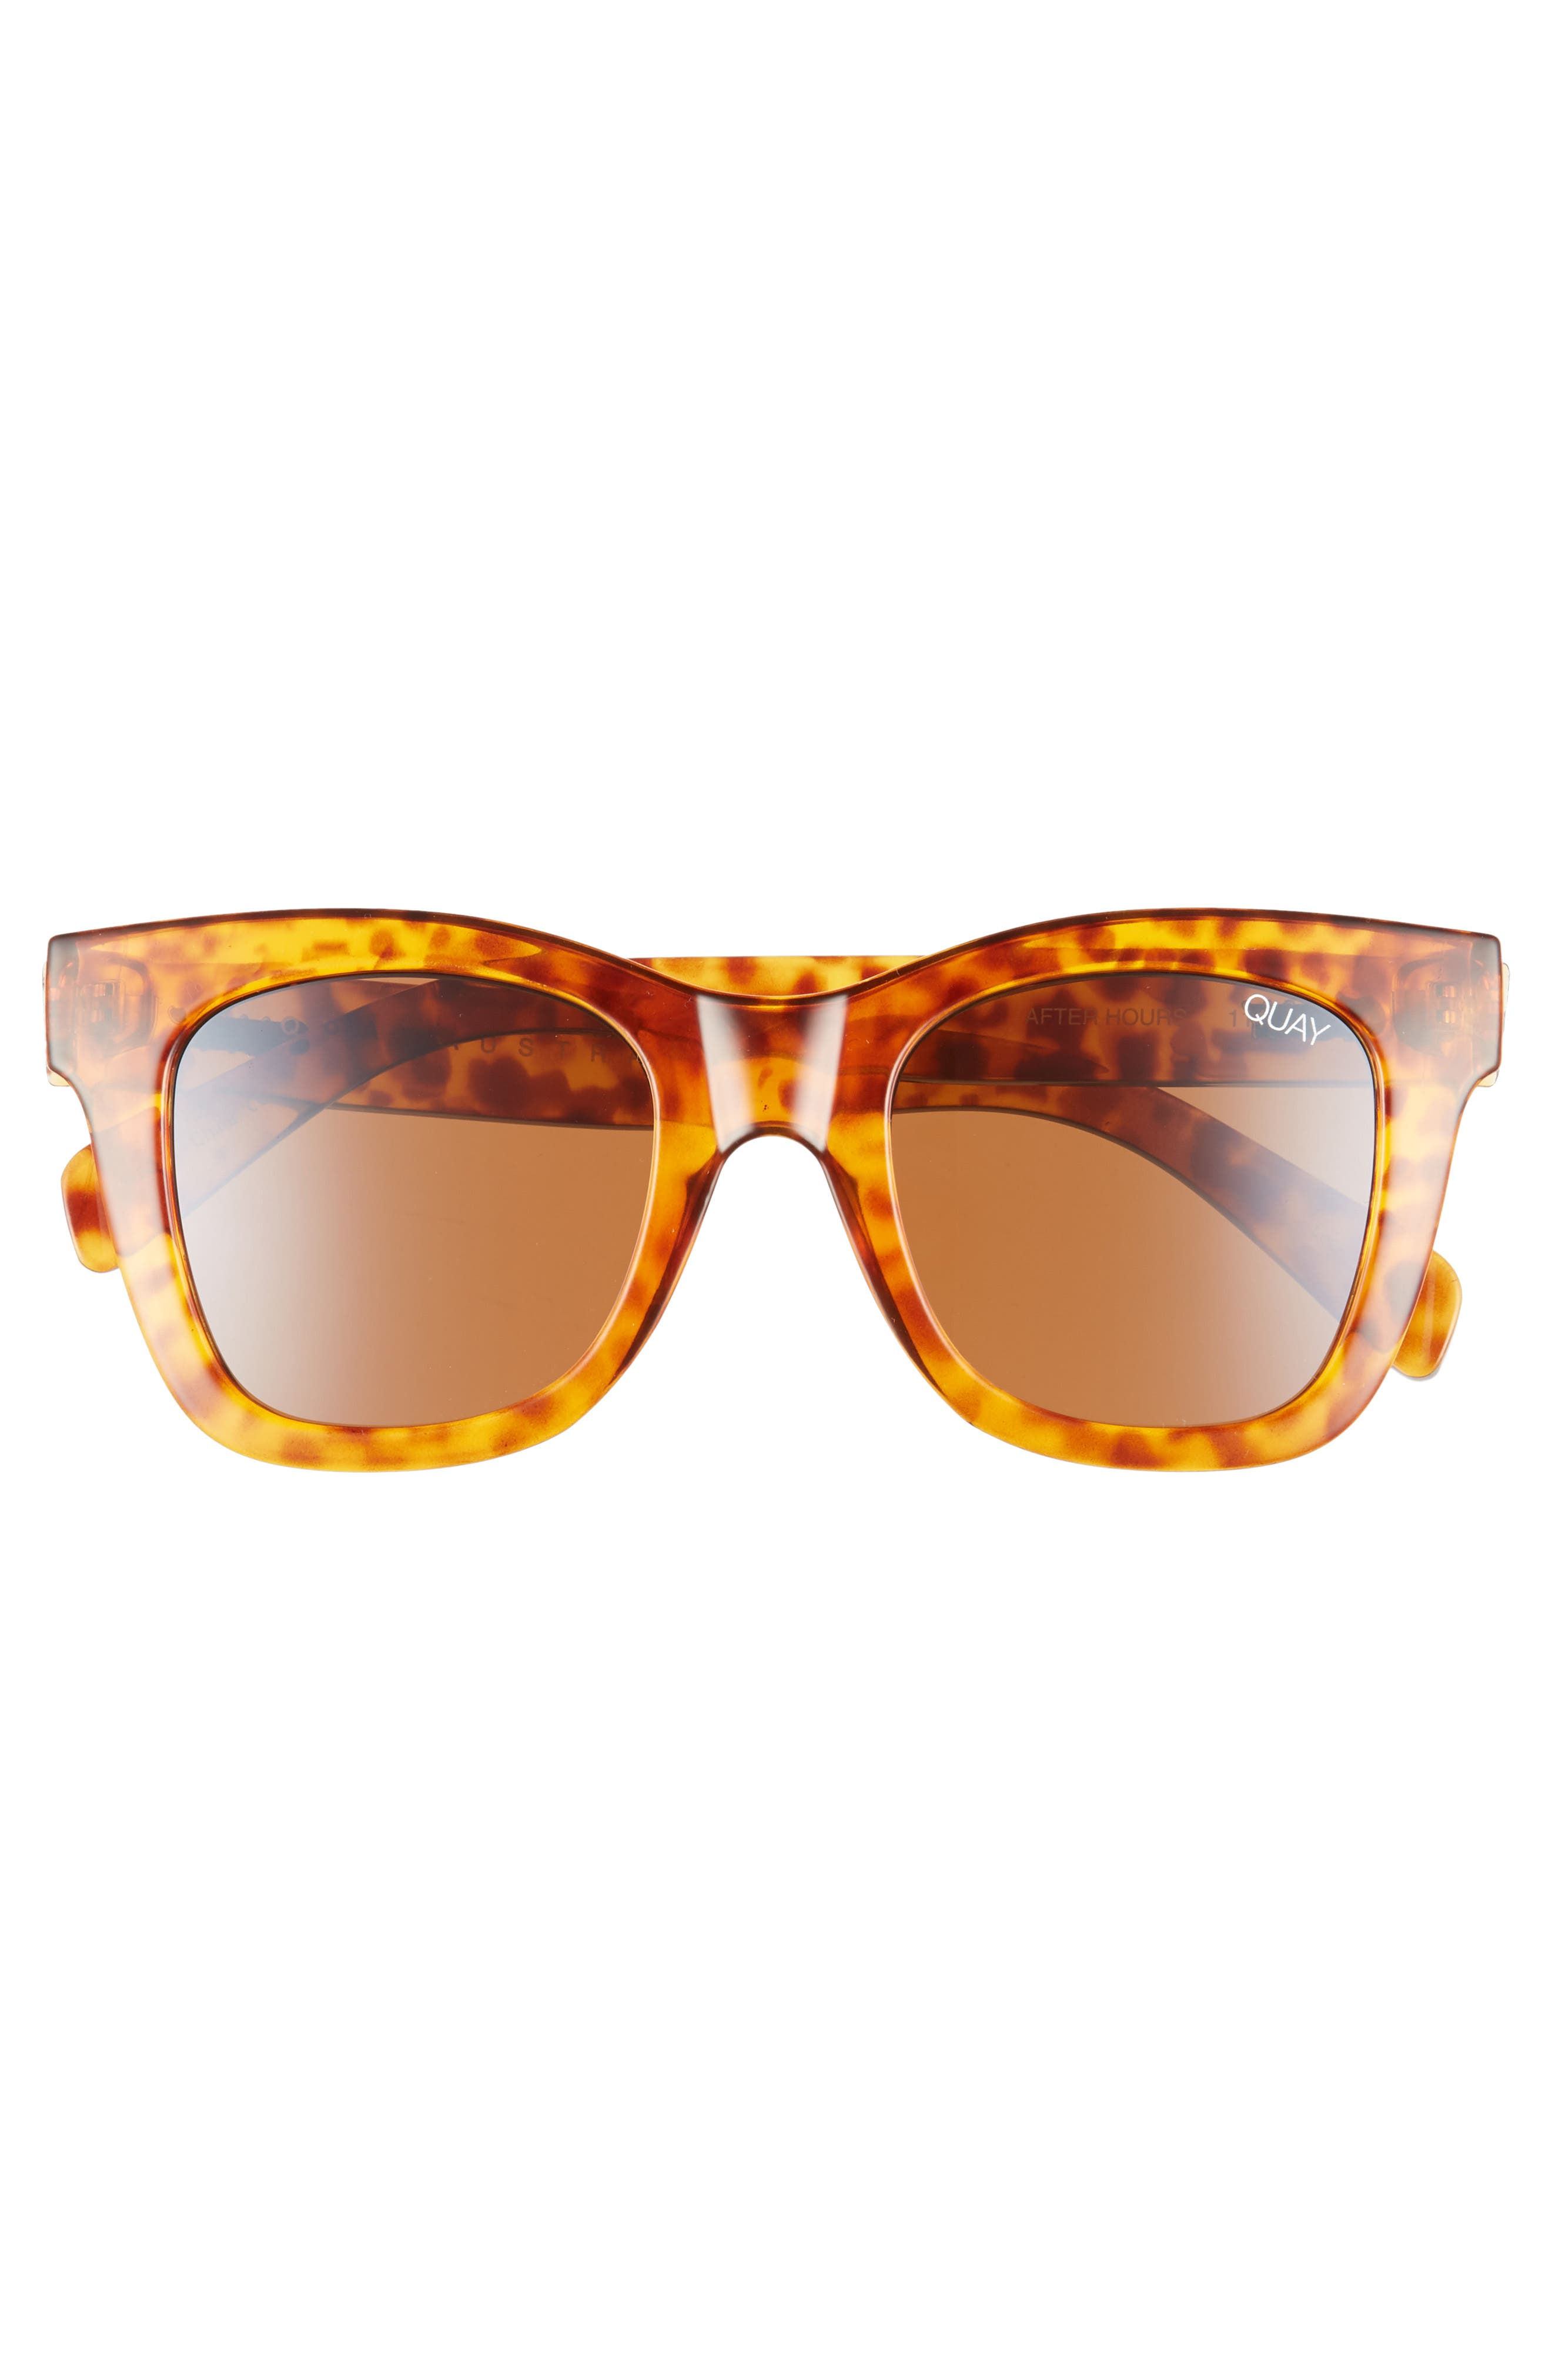 After Hours 50mm Square Sunglasses,                             Alternate thumbnail 3, color,                             ORANGE TORT / BROWN